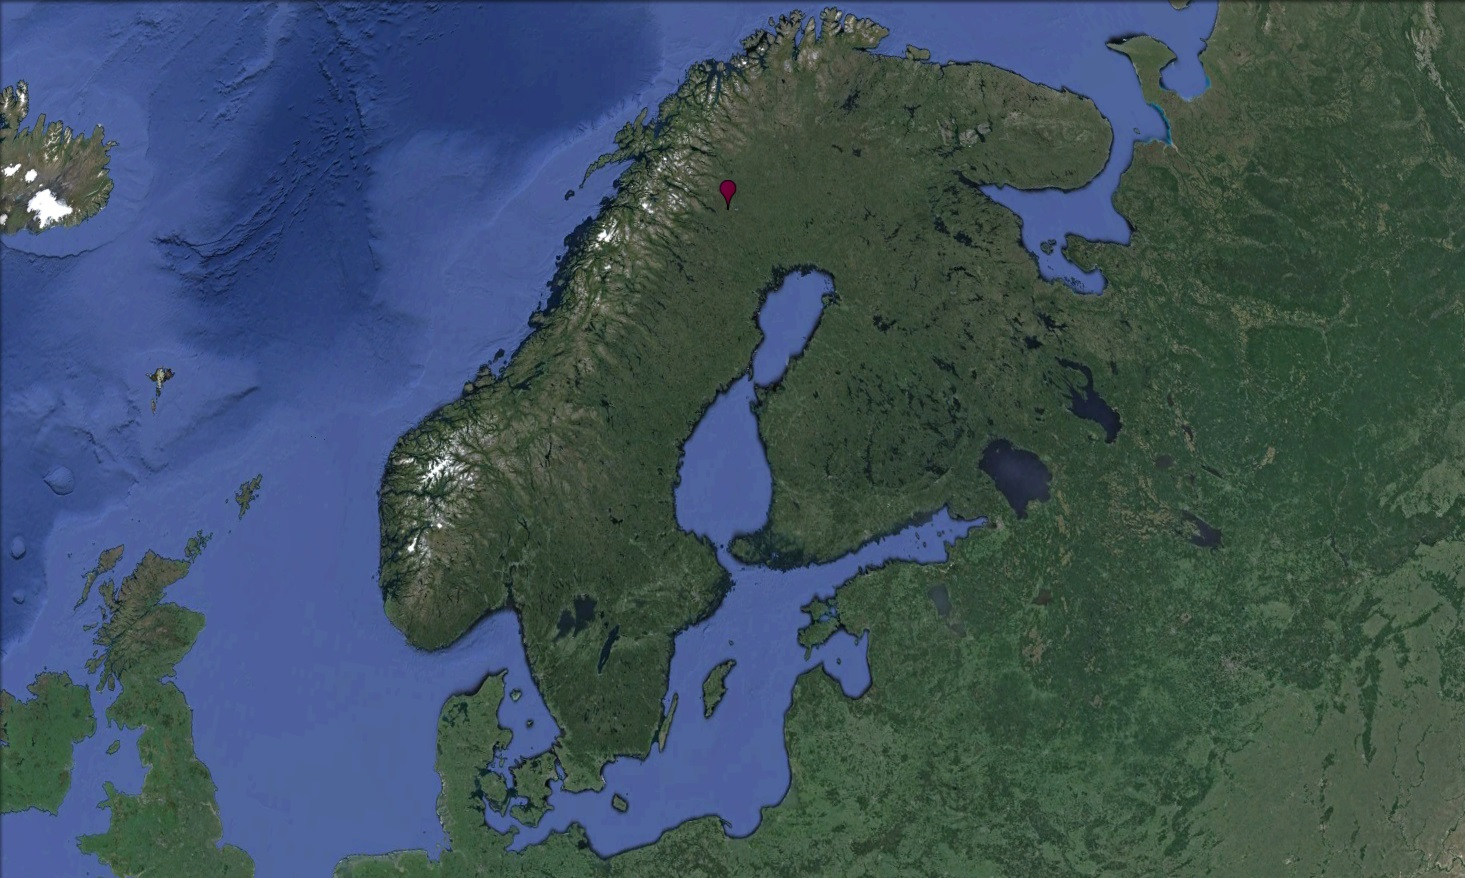 The Only Swedish Bigfoot Footage The Cloaked Hedgehog - Sweden big map